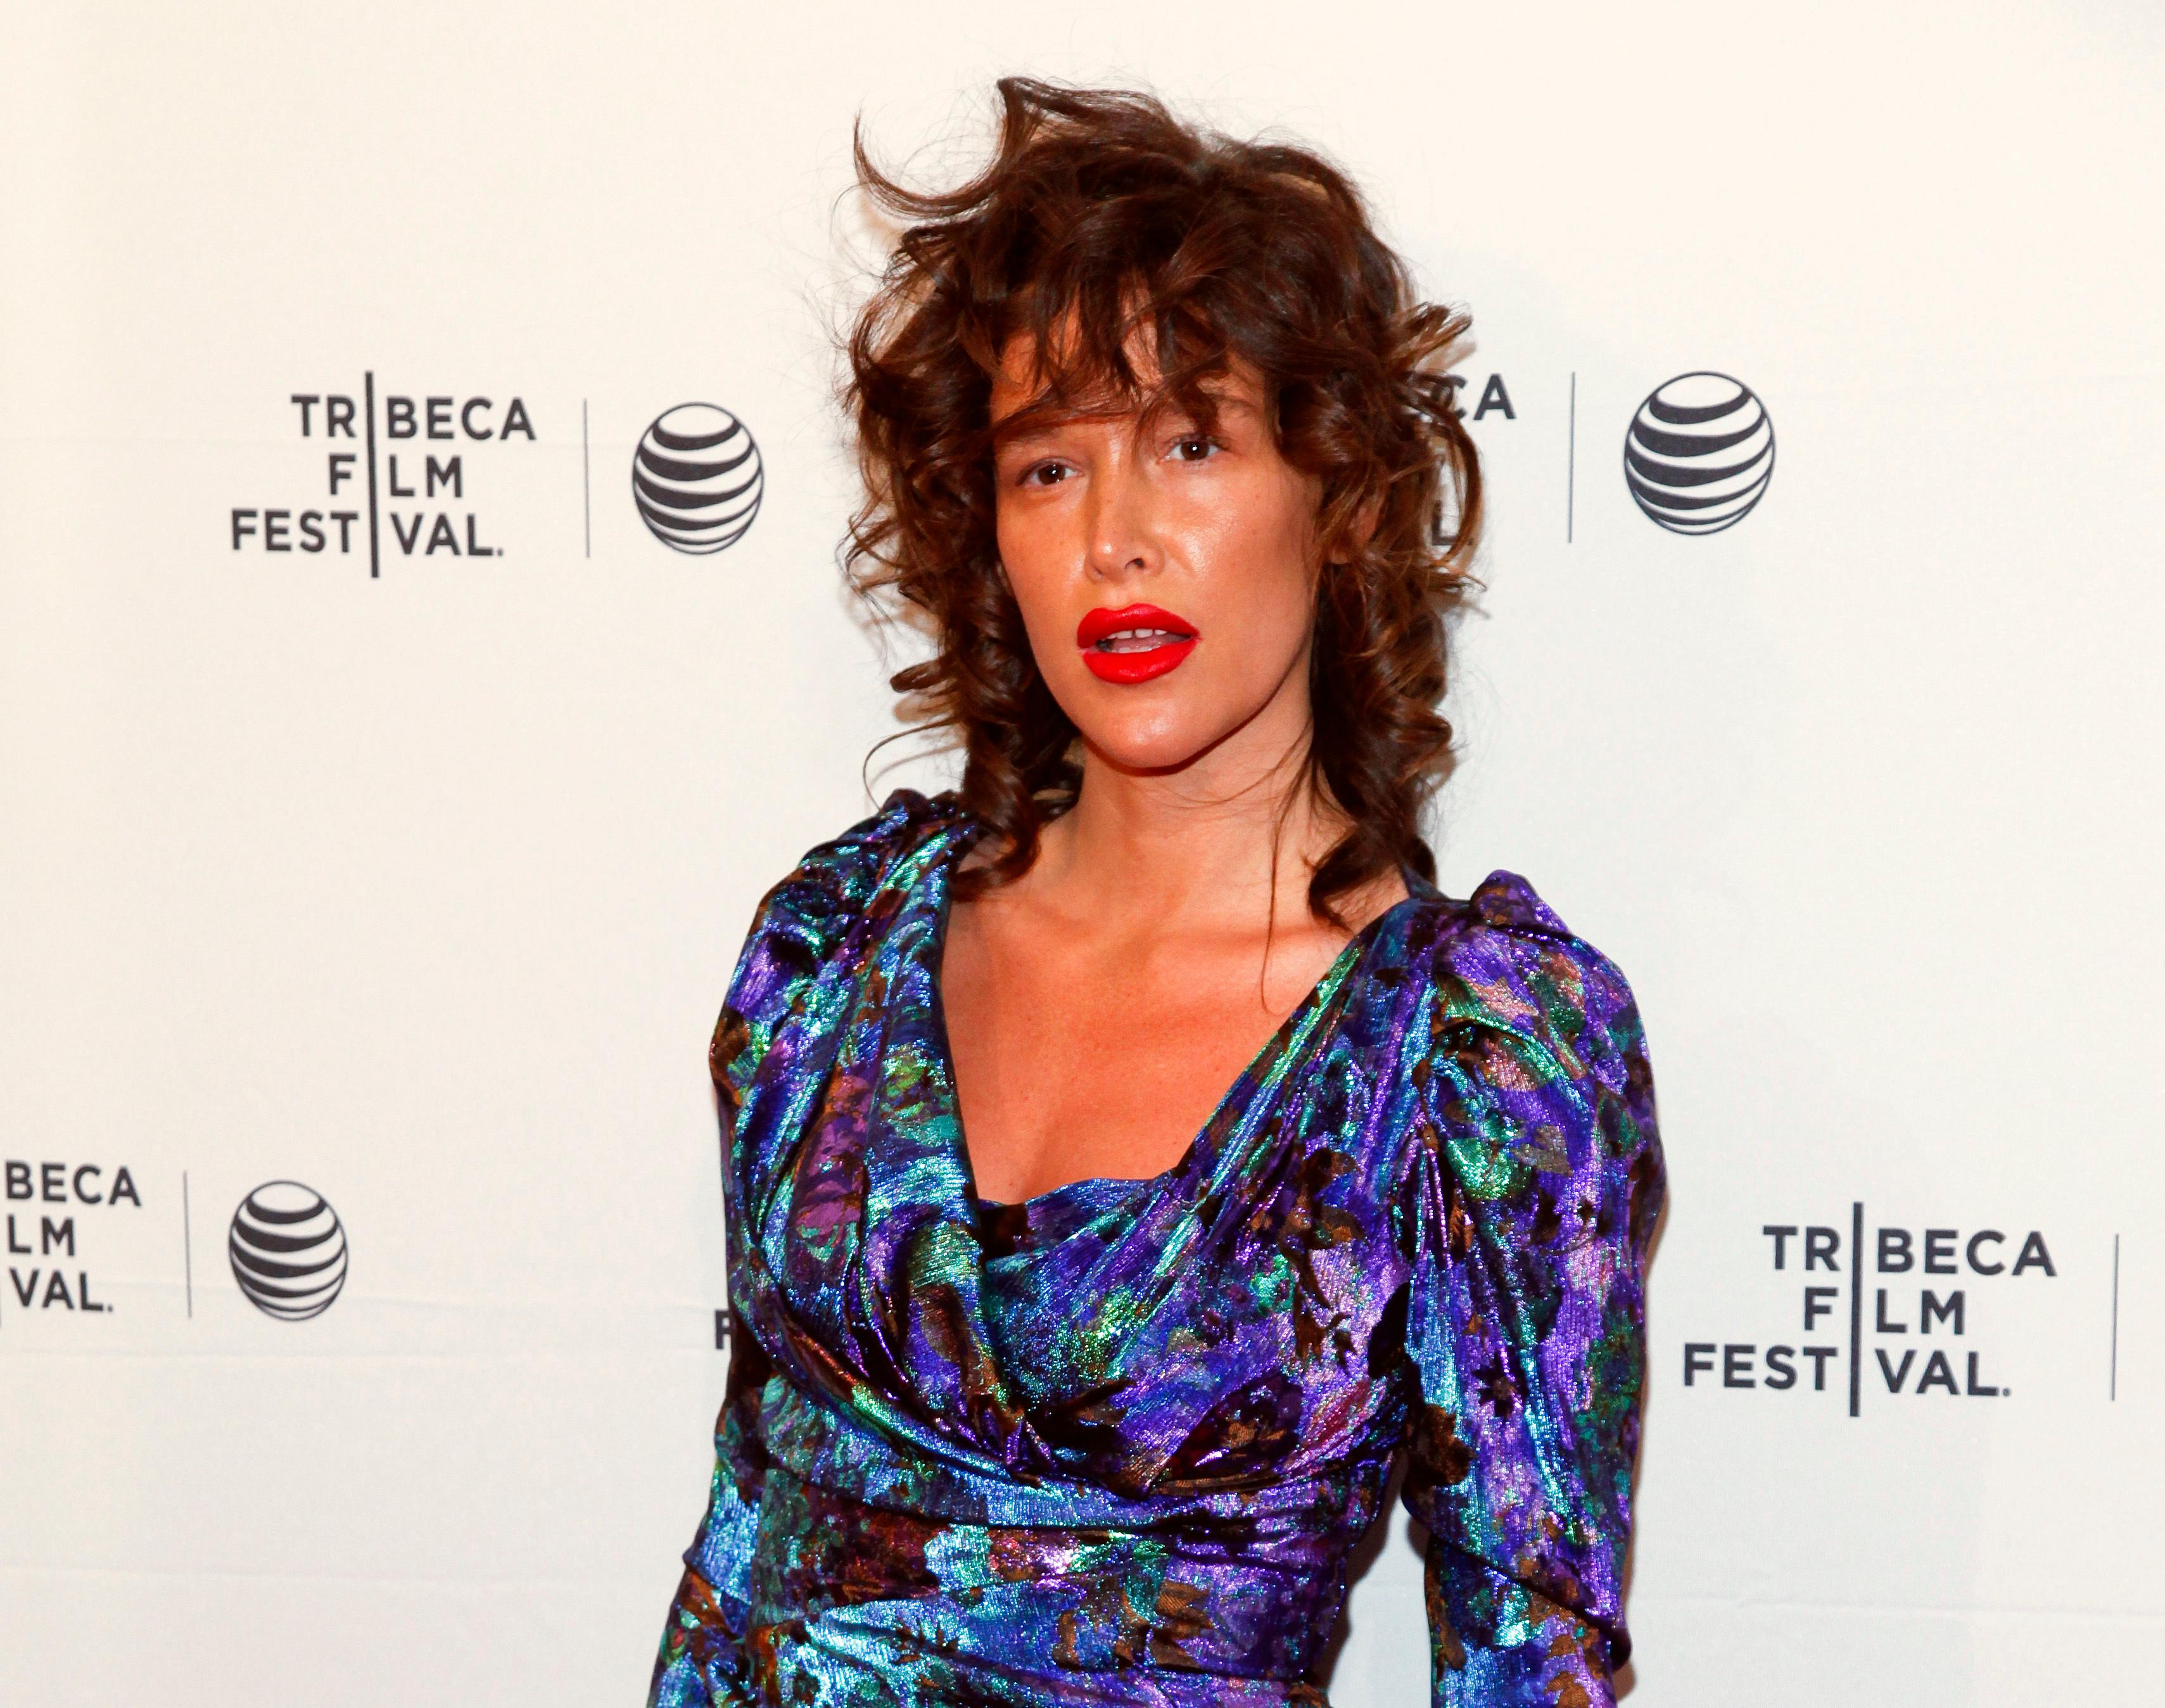 "FILE - In this April 19, 2015 file photo, Paz de la Huerta attends the Tribeca Film Festival world premiere of ""Bare"" at the SVA Theatre in New York. The actress accused Weinstein of raping her two times in 2010 in a CBS News report that aired Thursday, Nov. 2, 2017. The Manhattan district attorney's office confirms it is investigating the claims along with New York police detectives. Weinstein through his spokeswoman has denied de la Huerta's accusations. (Photo by Andy Kropa/Invision/AP, File)"